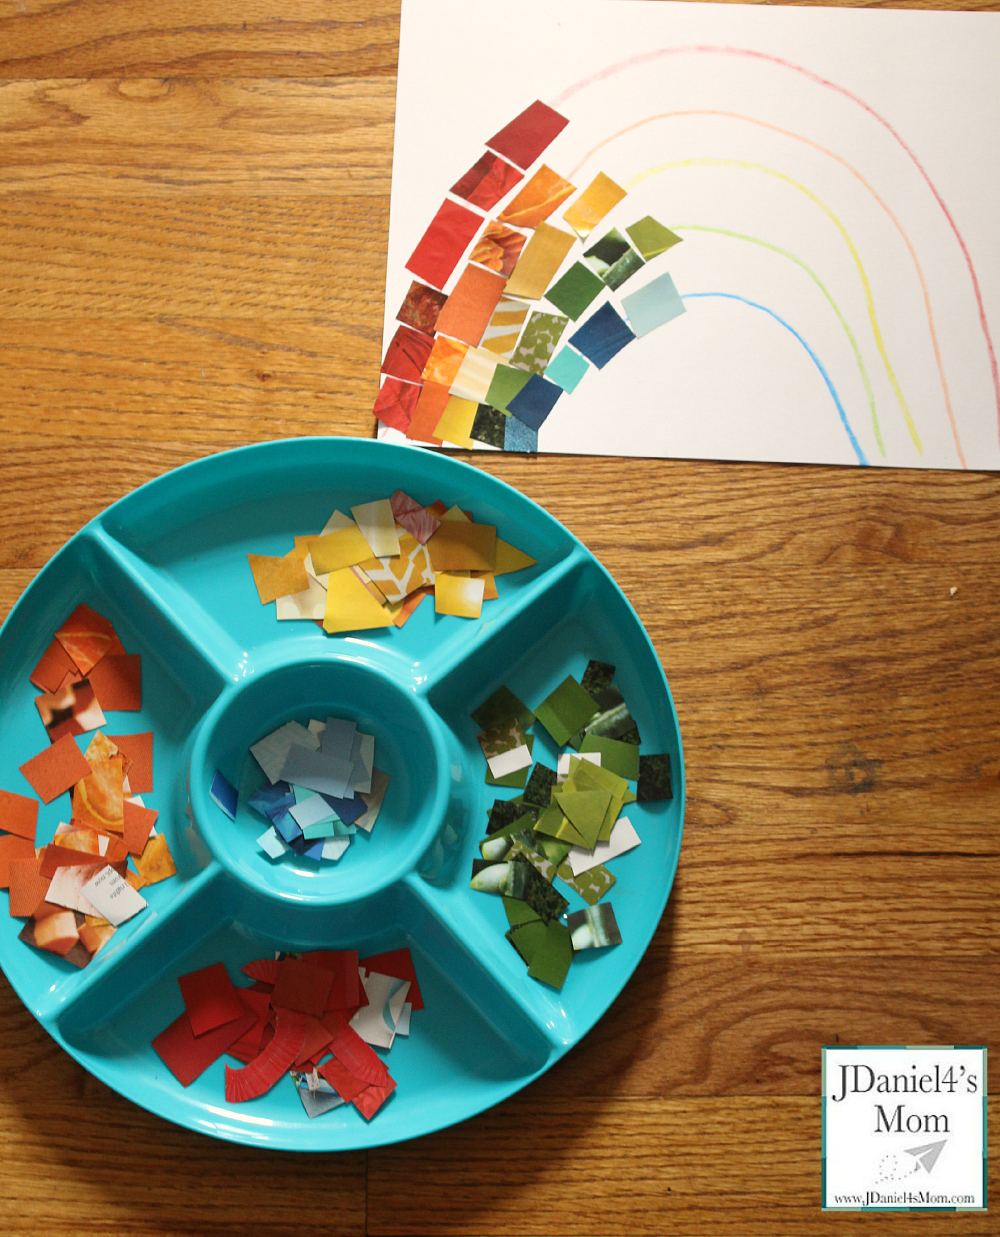 Crafts for Kids- Rainbow Collage of Colors